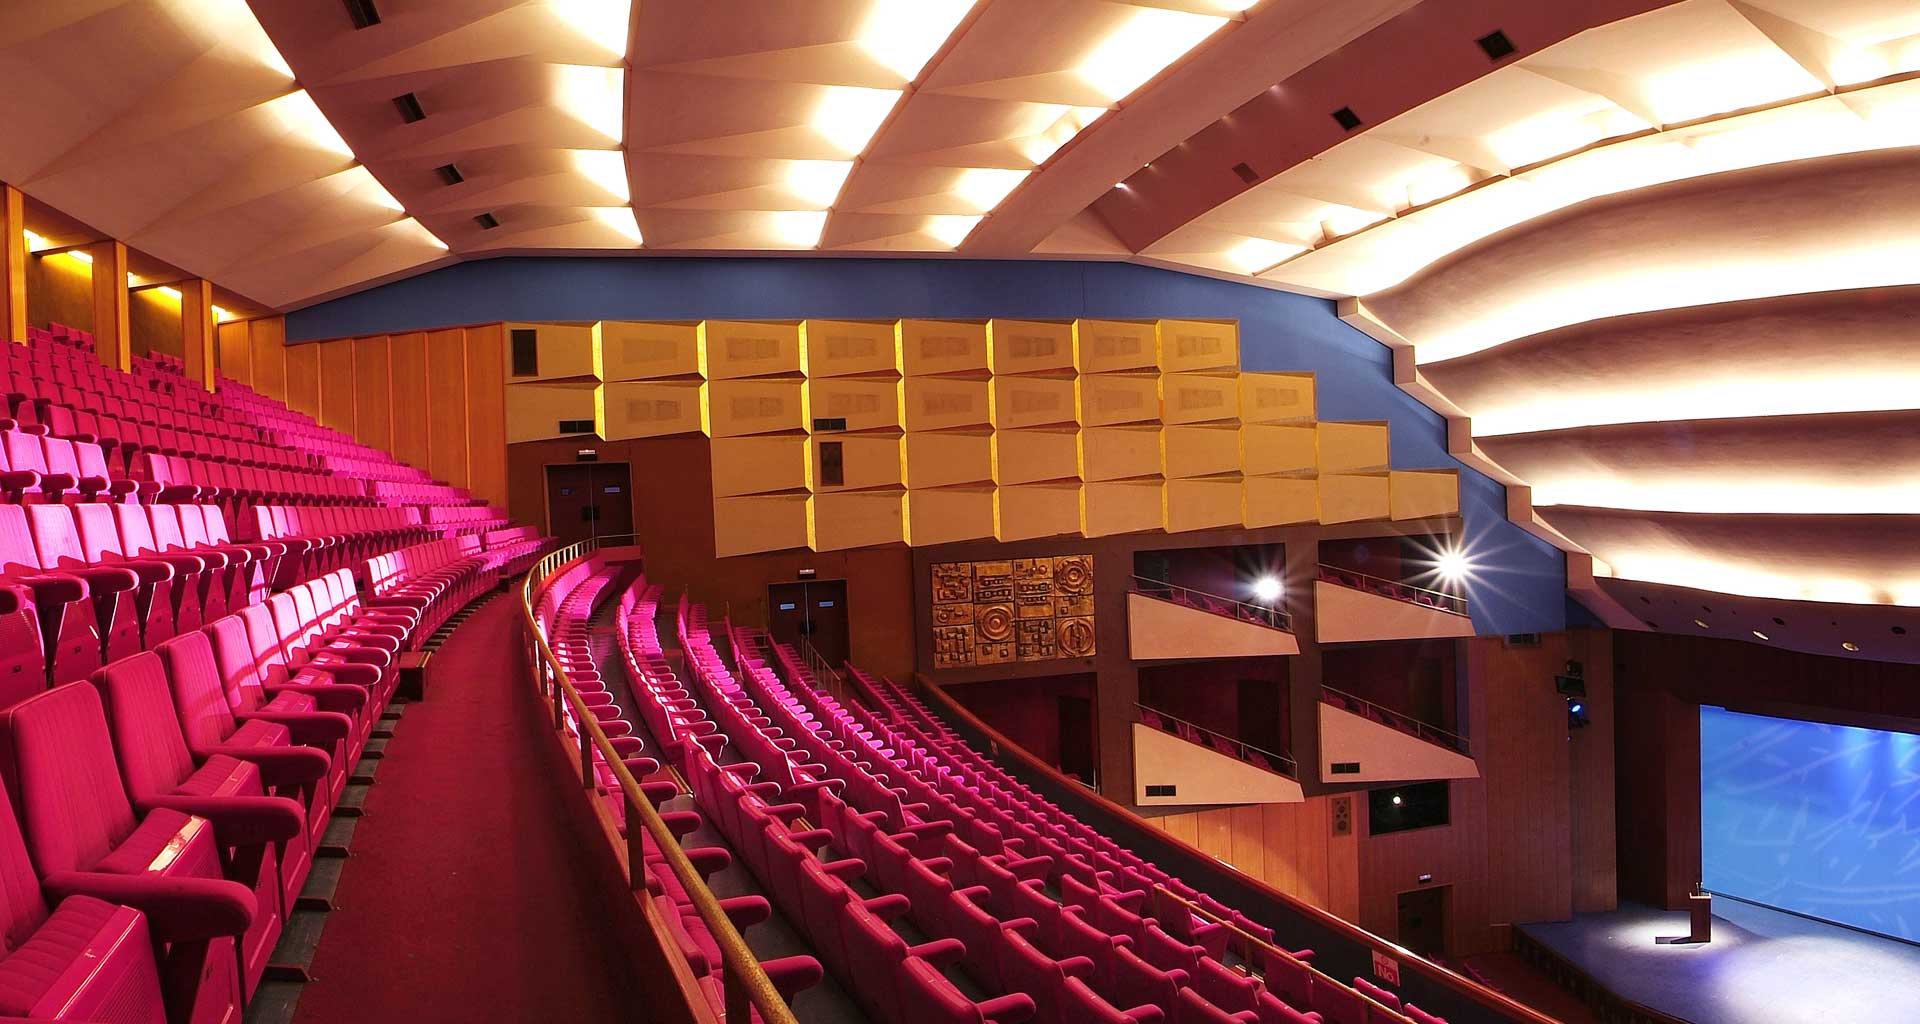 Theatre in Palma – Auditorium at Paseo Maritimo